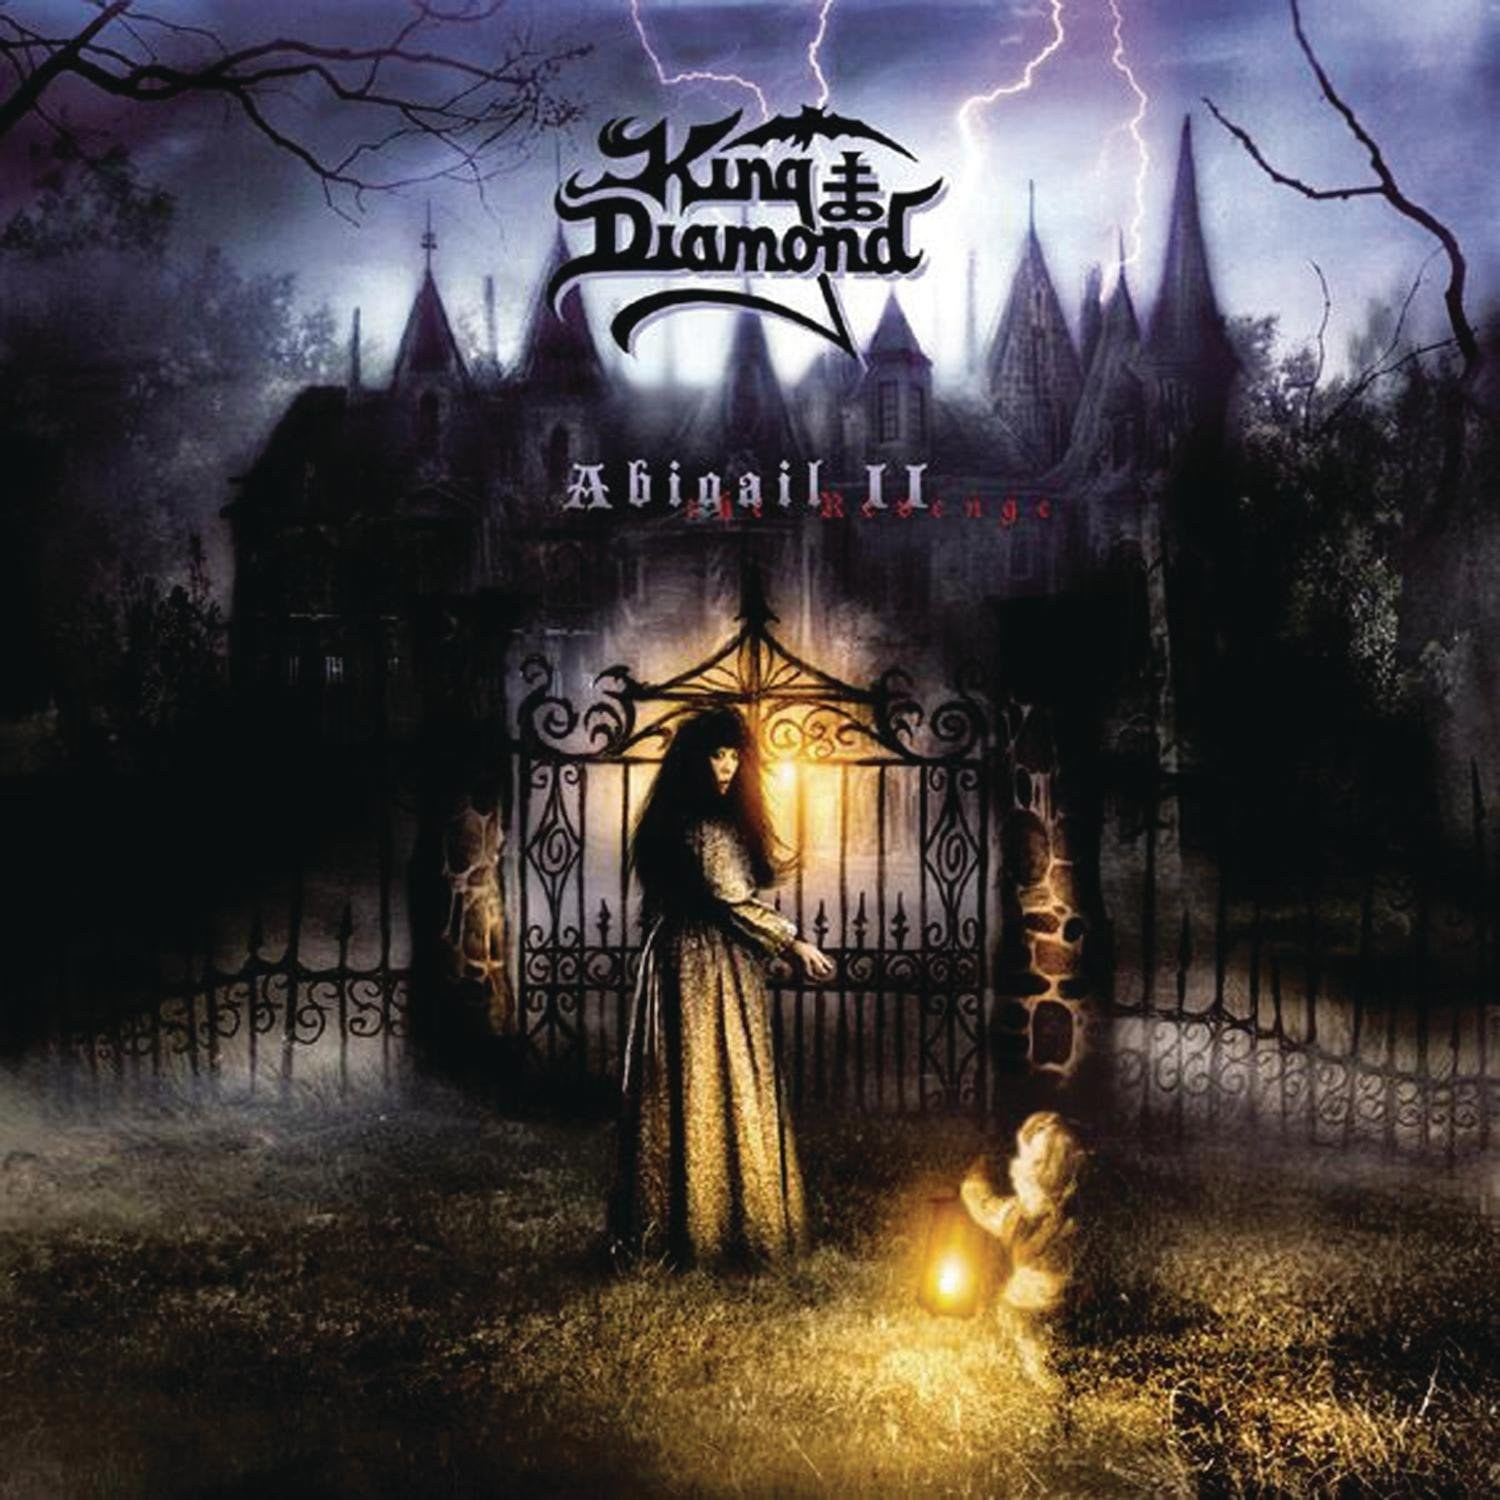 Review for King Diamond - Abigail II: The Revenge